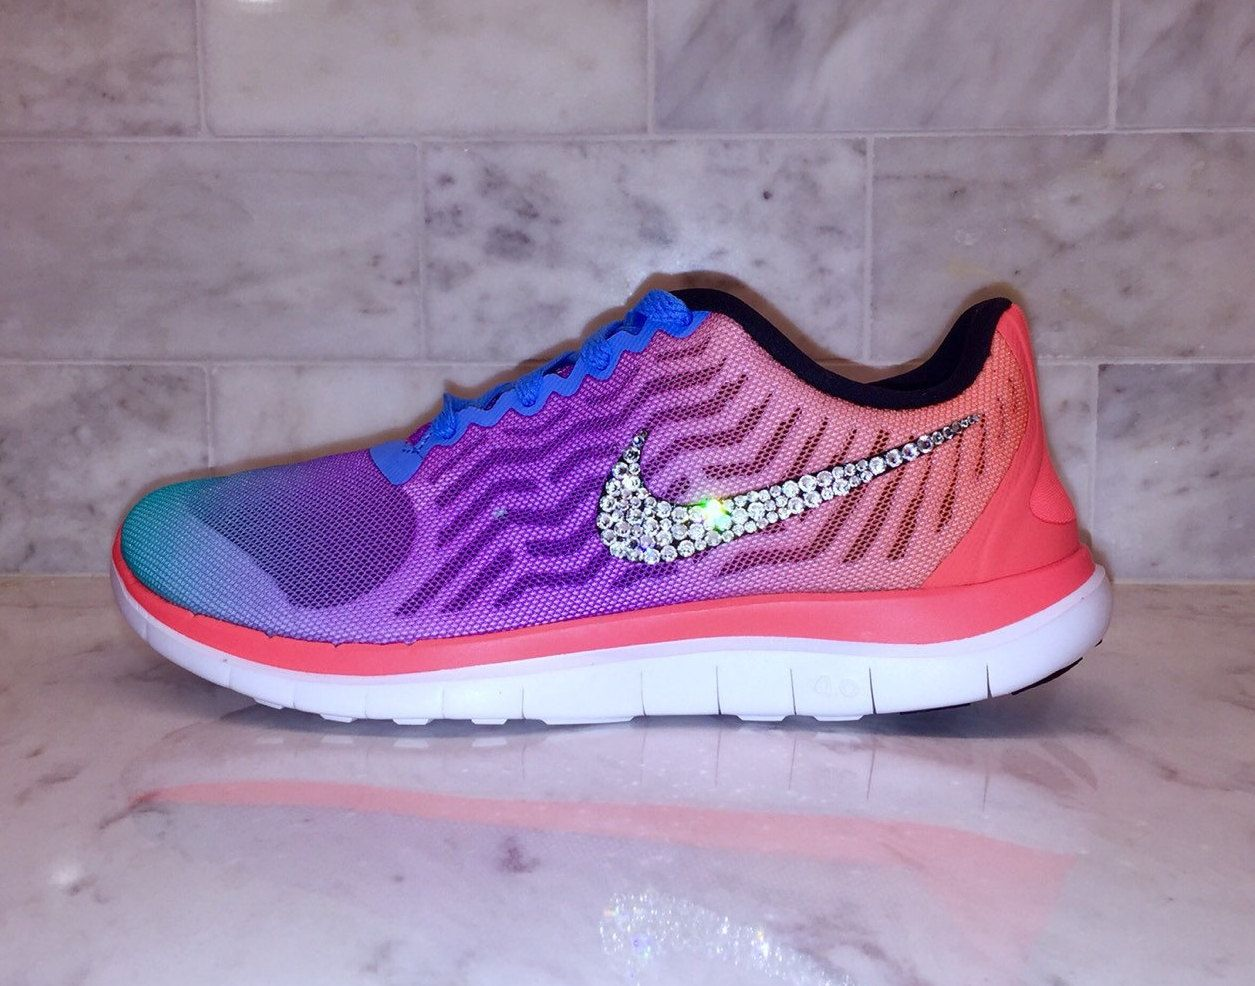 new product 4f06c 5115d ... spain swarovski bling rainbow nike free 5.0 neon crystal by  goldhomecouture on etsy a409a 709d3